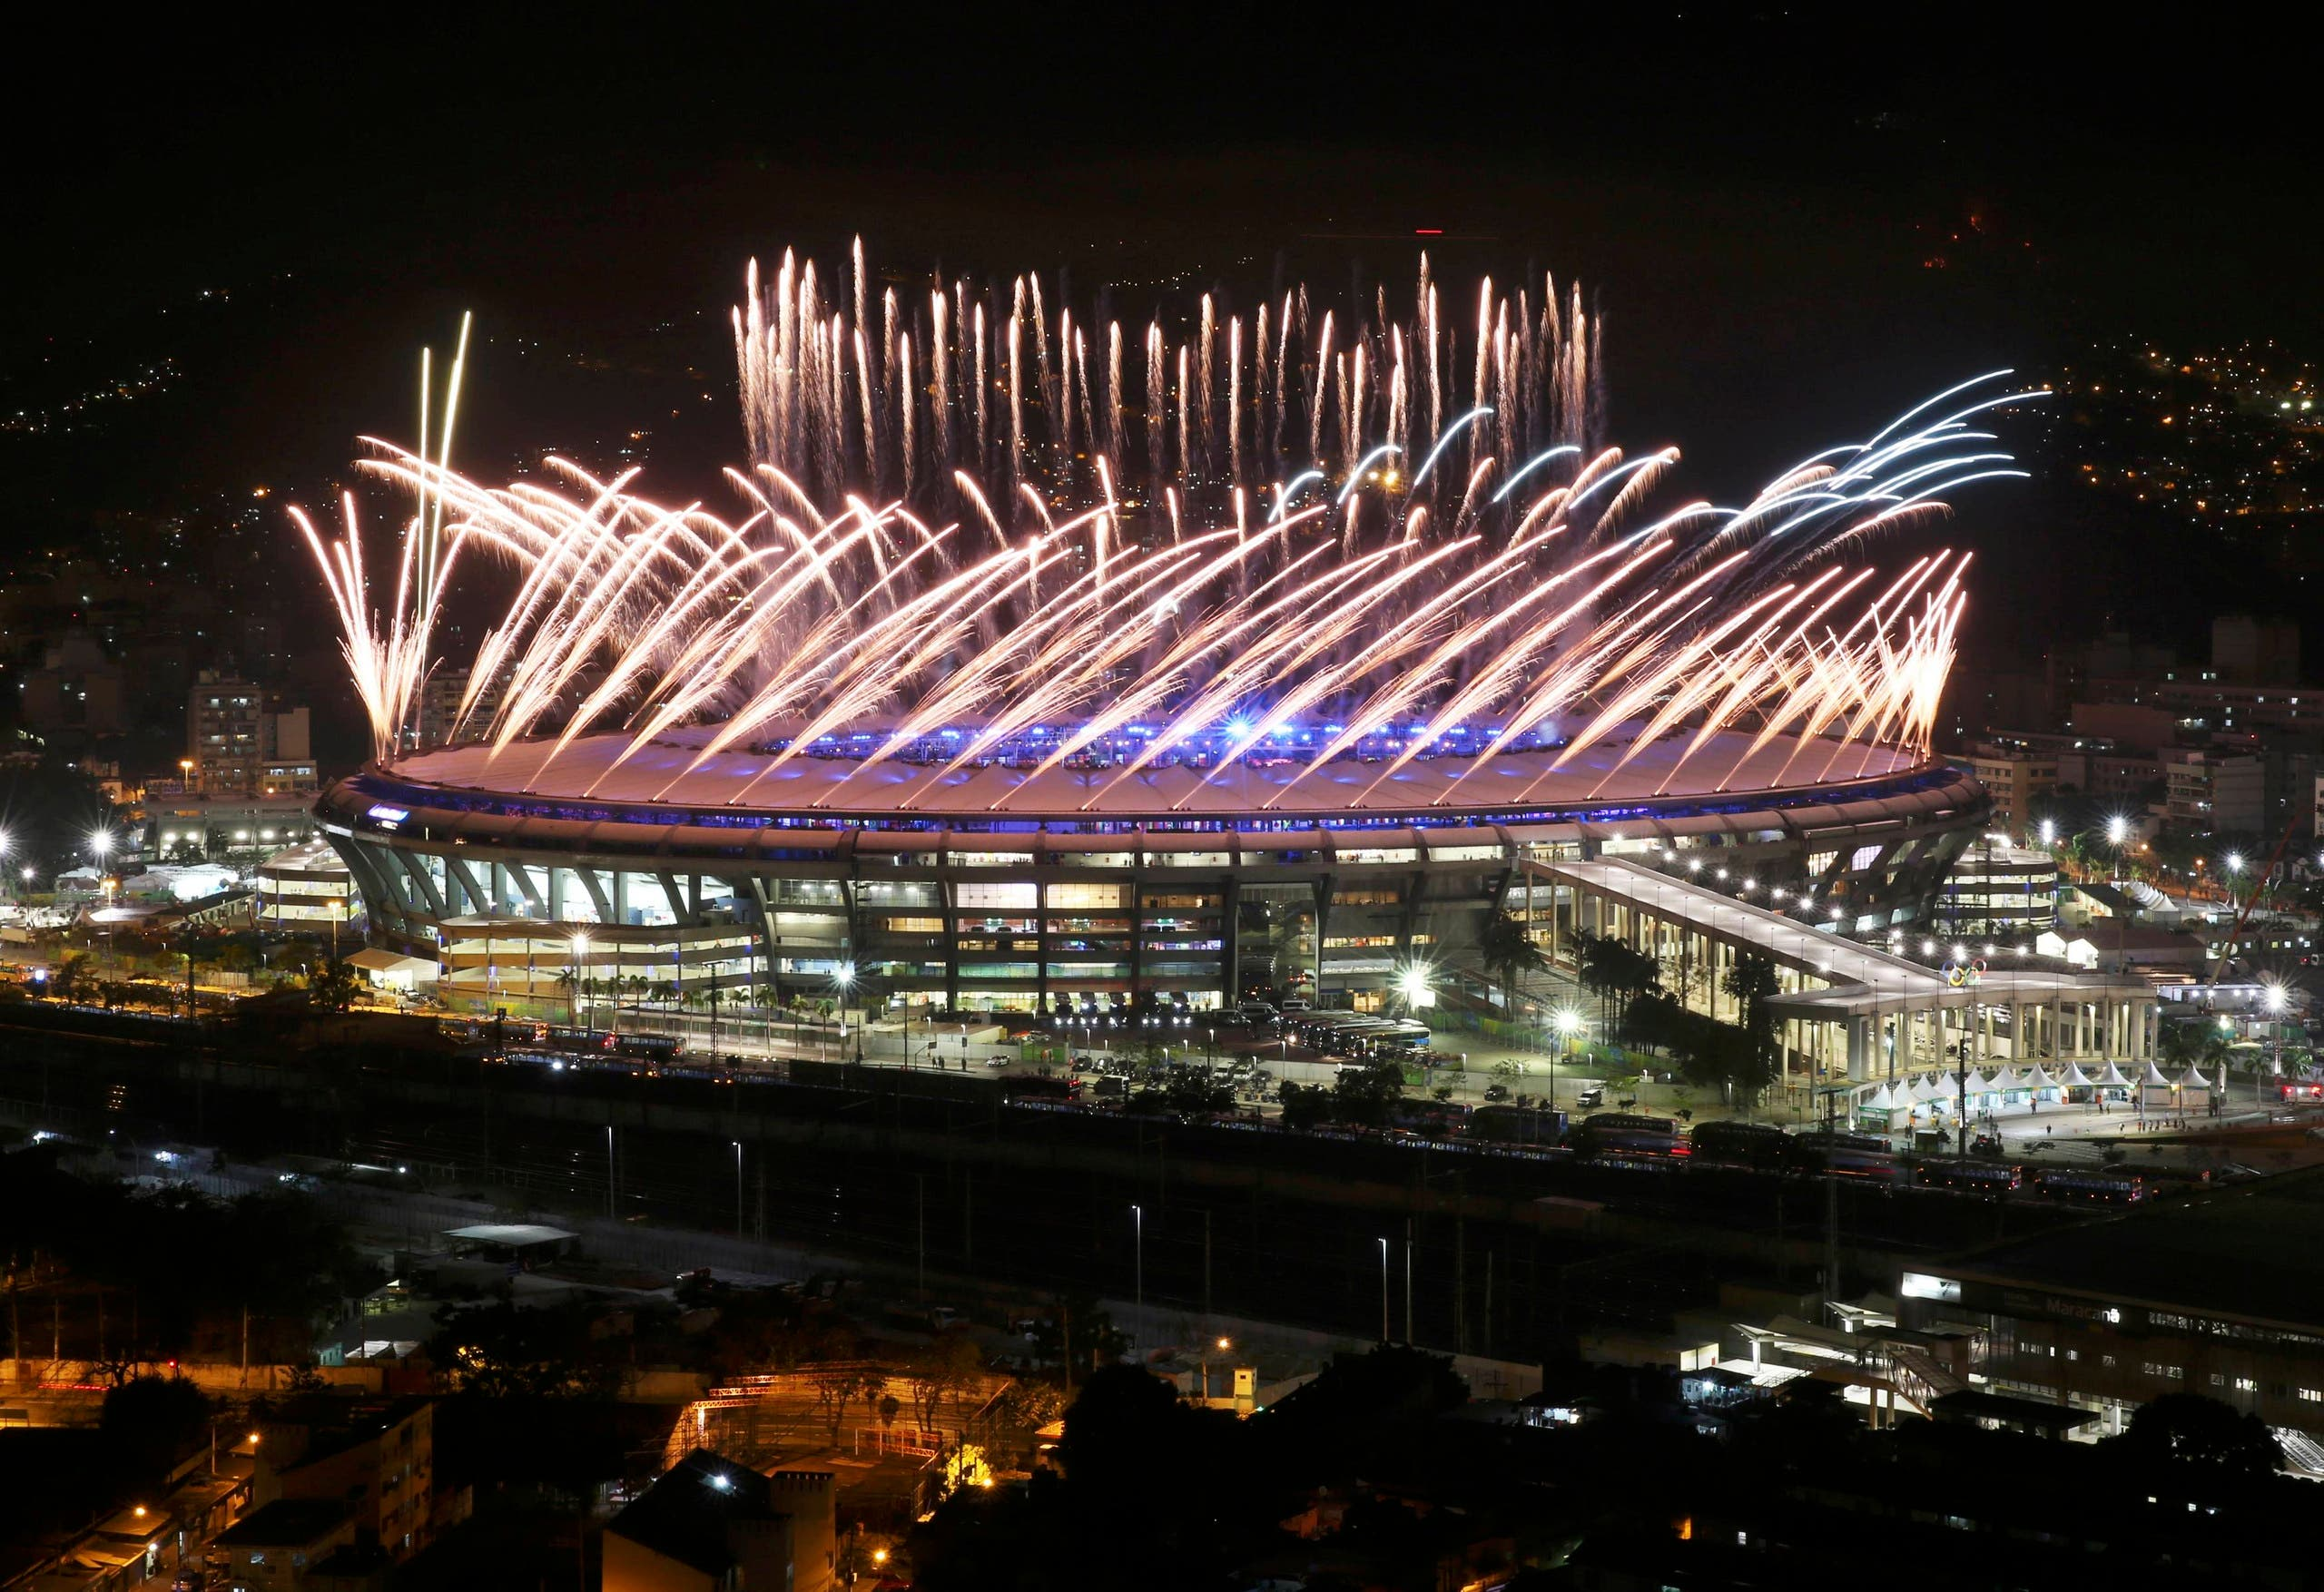 Fireworks over the Maracana stadium. REUTERS